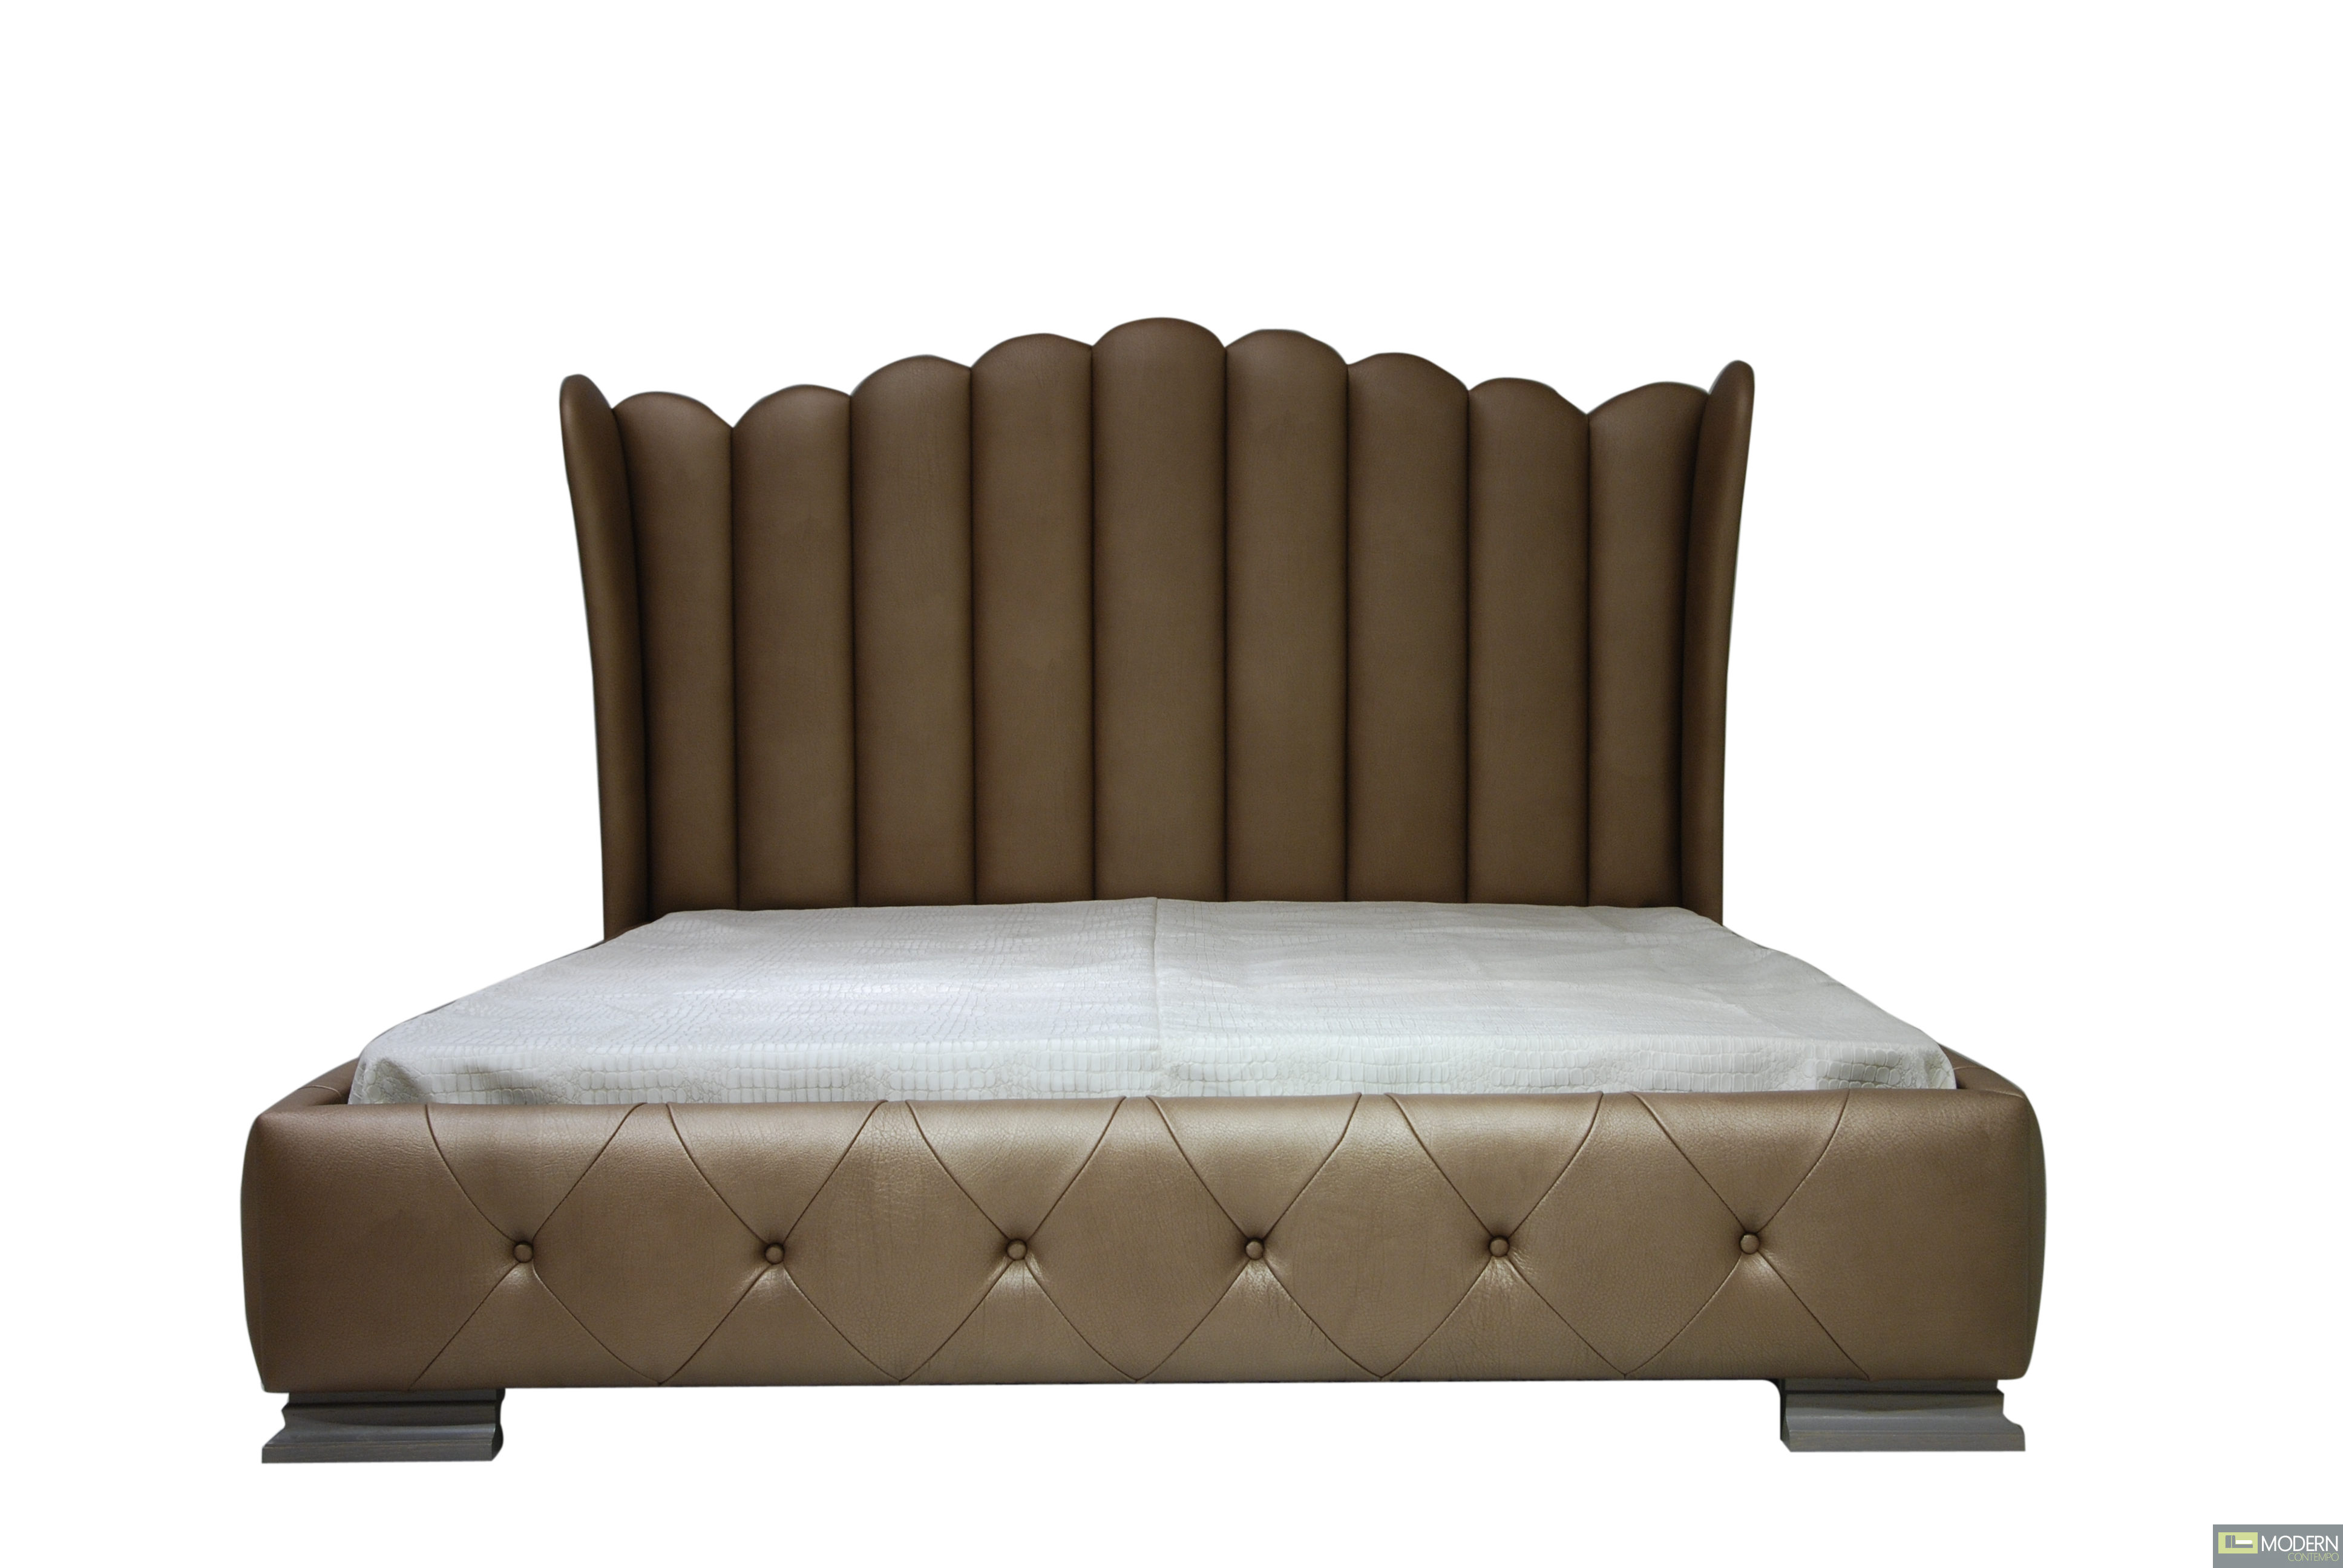 Modern Leather Bed - MCJB12